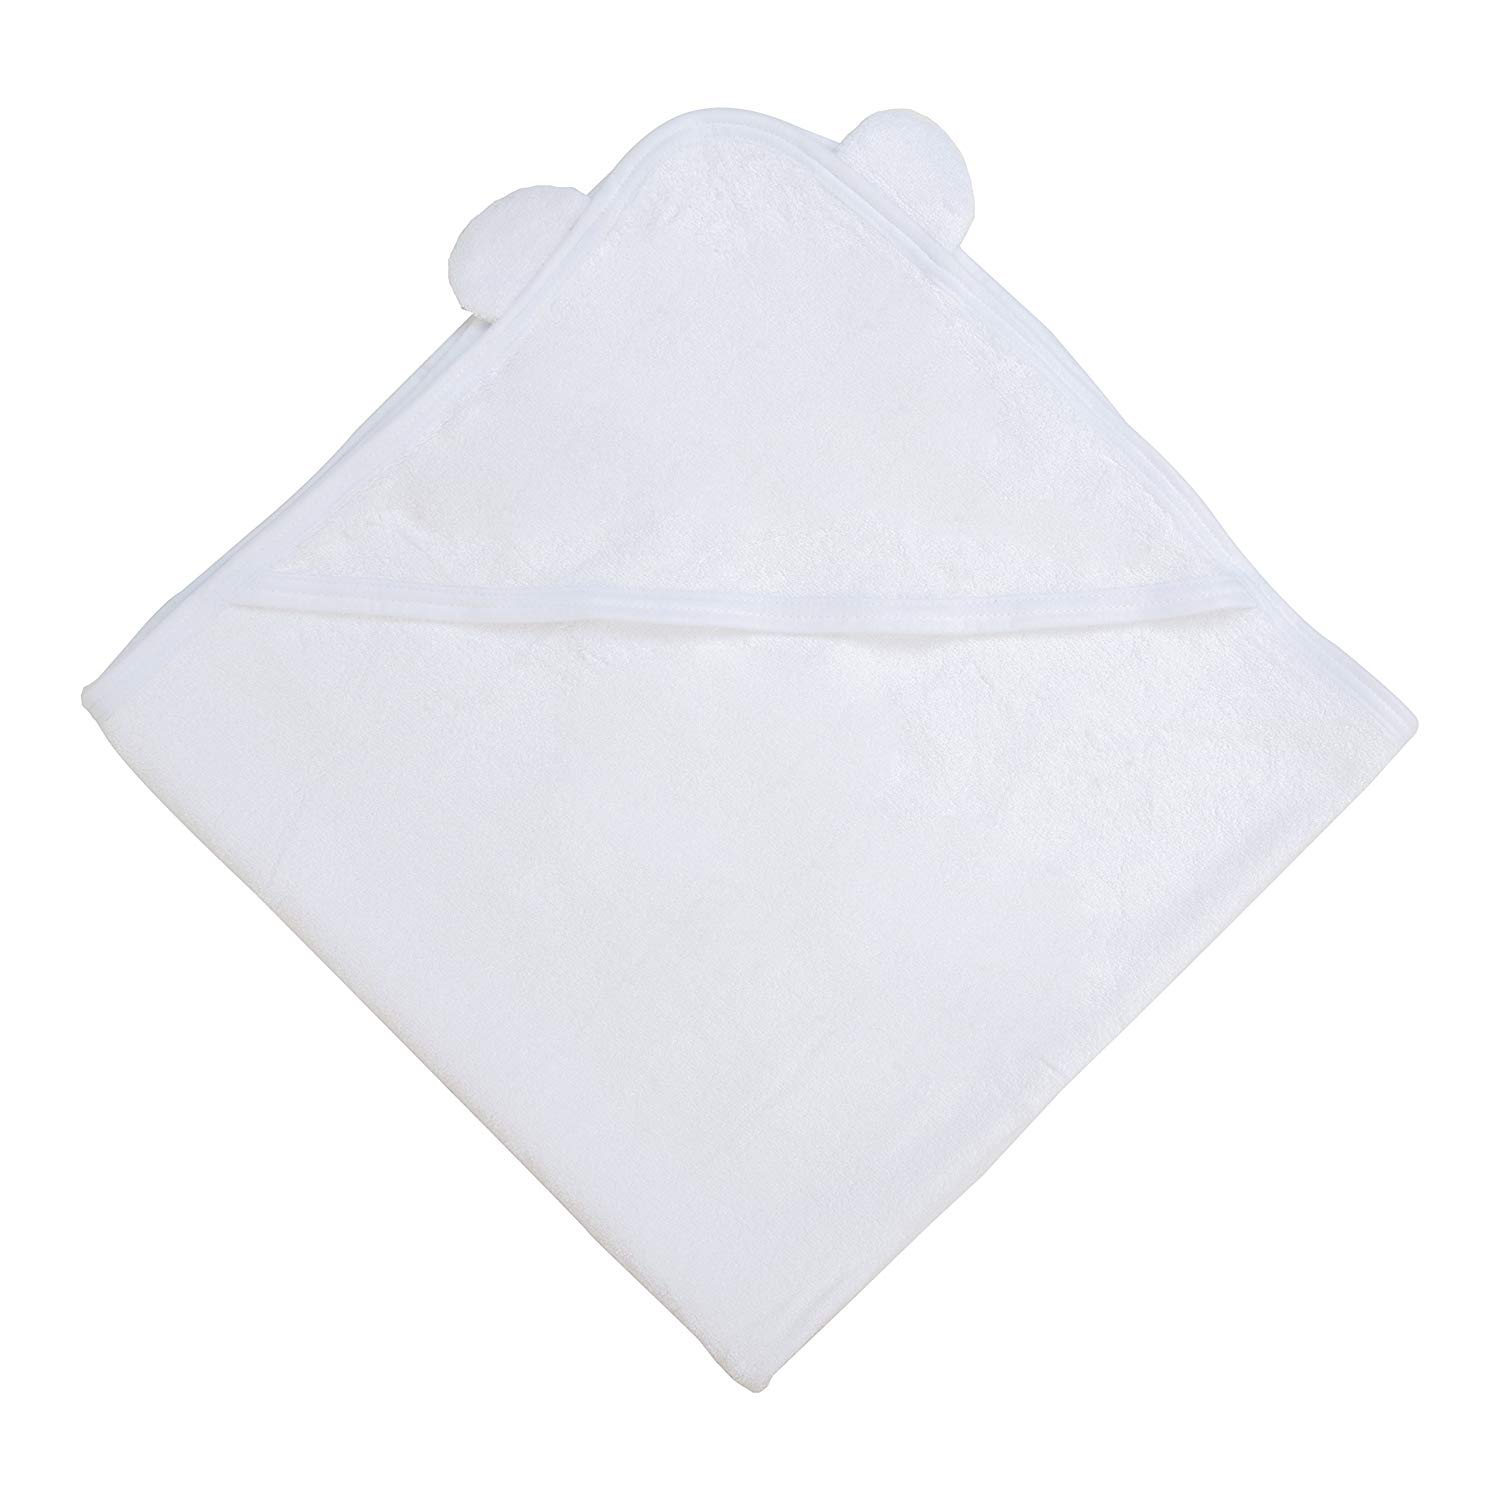 White Bamboo Hooded Baby Towel 100 Organic Unisex Towel Highly Absorbent And Super Soft Bath Towel For The Pool And Th B07211F5TG 9